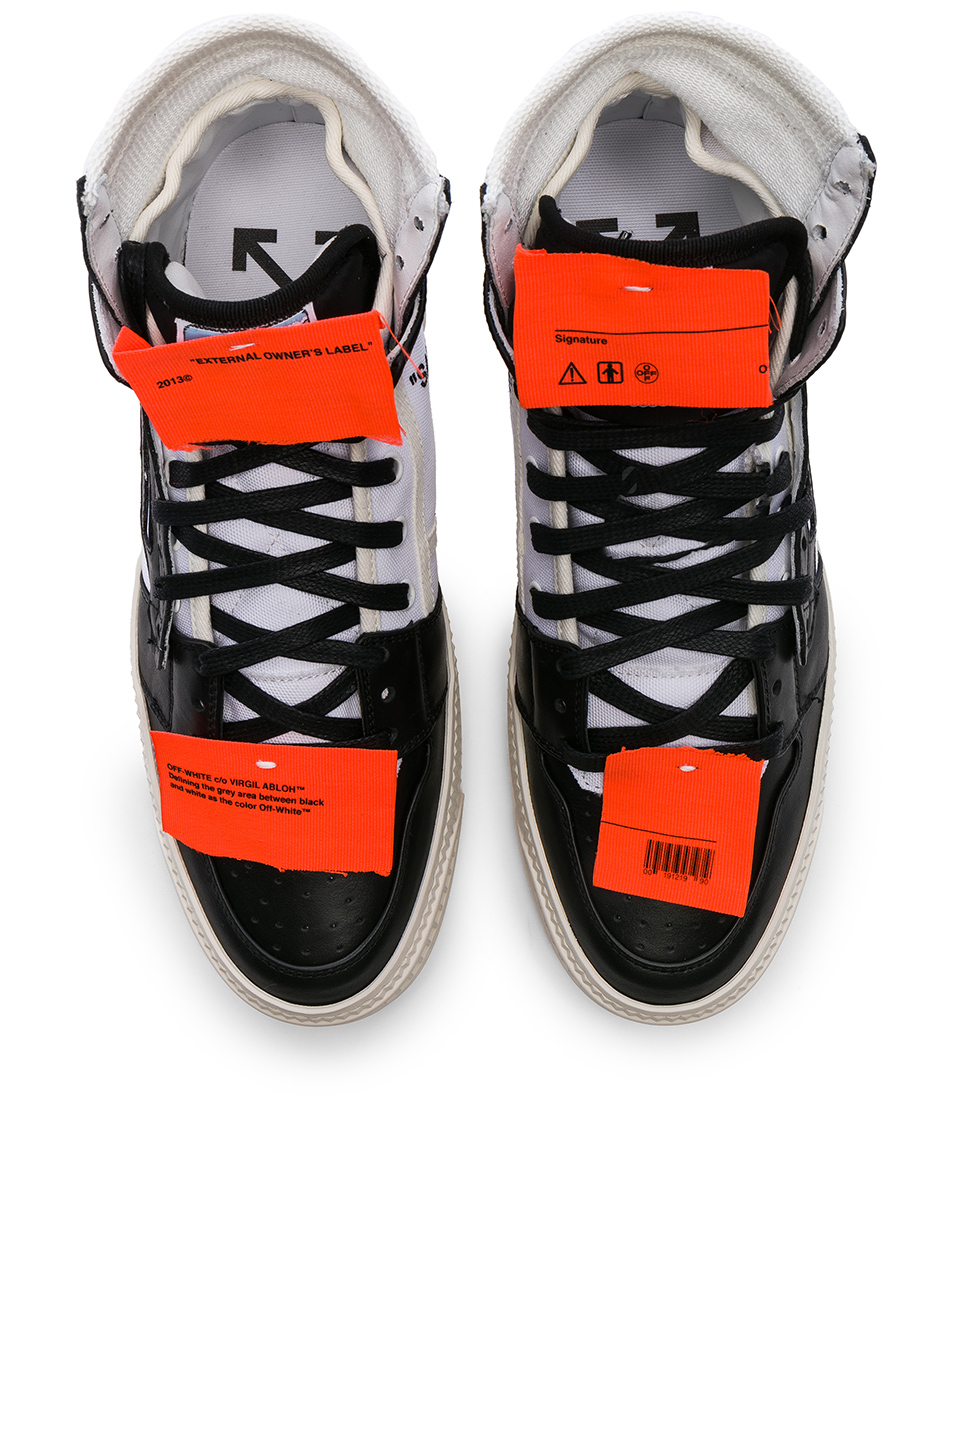 Buy Original OFF-WHITE Low 3.0 Sneakers at Indonesia  dcf3e3fa1a